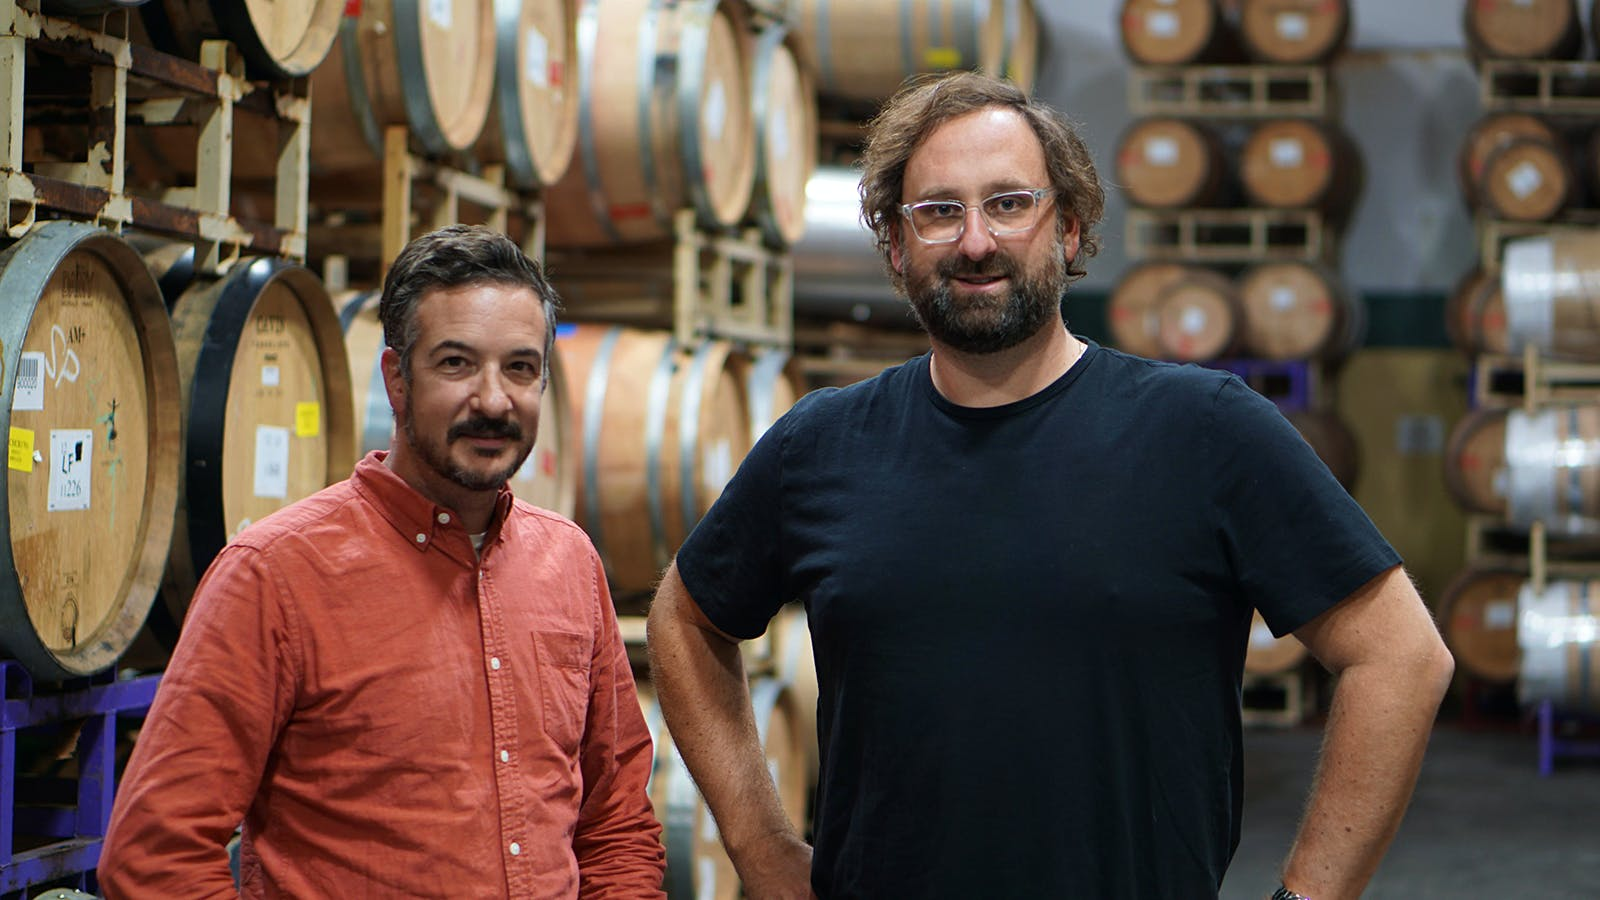 Sweet Berry Wine! Comedian Eric Wareheim Stands Up for Carignan